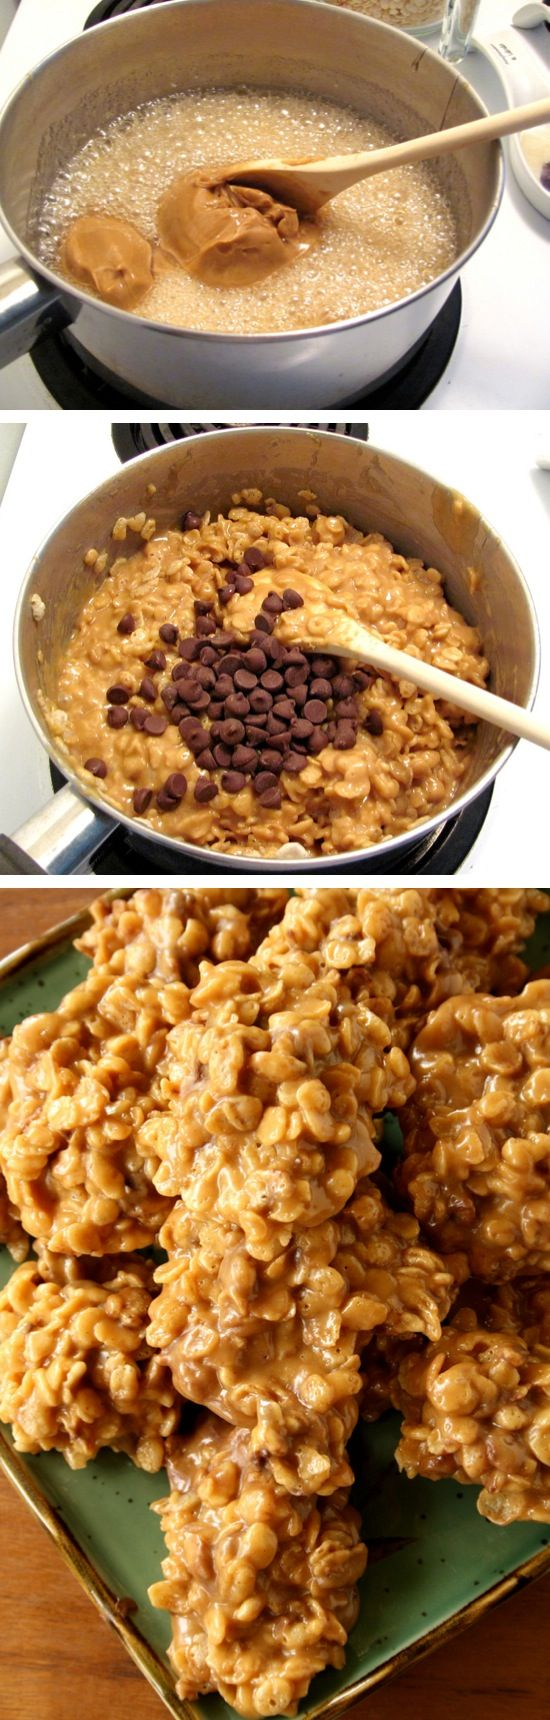 Stove Top Peanut Butter Cereal Cookies | No baking required! Made with Special K, but you could also make them with Rice Krispies or any other cereal.